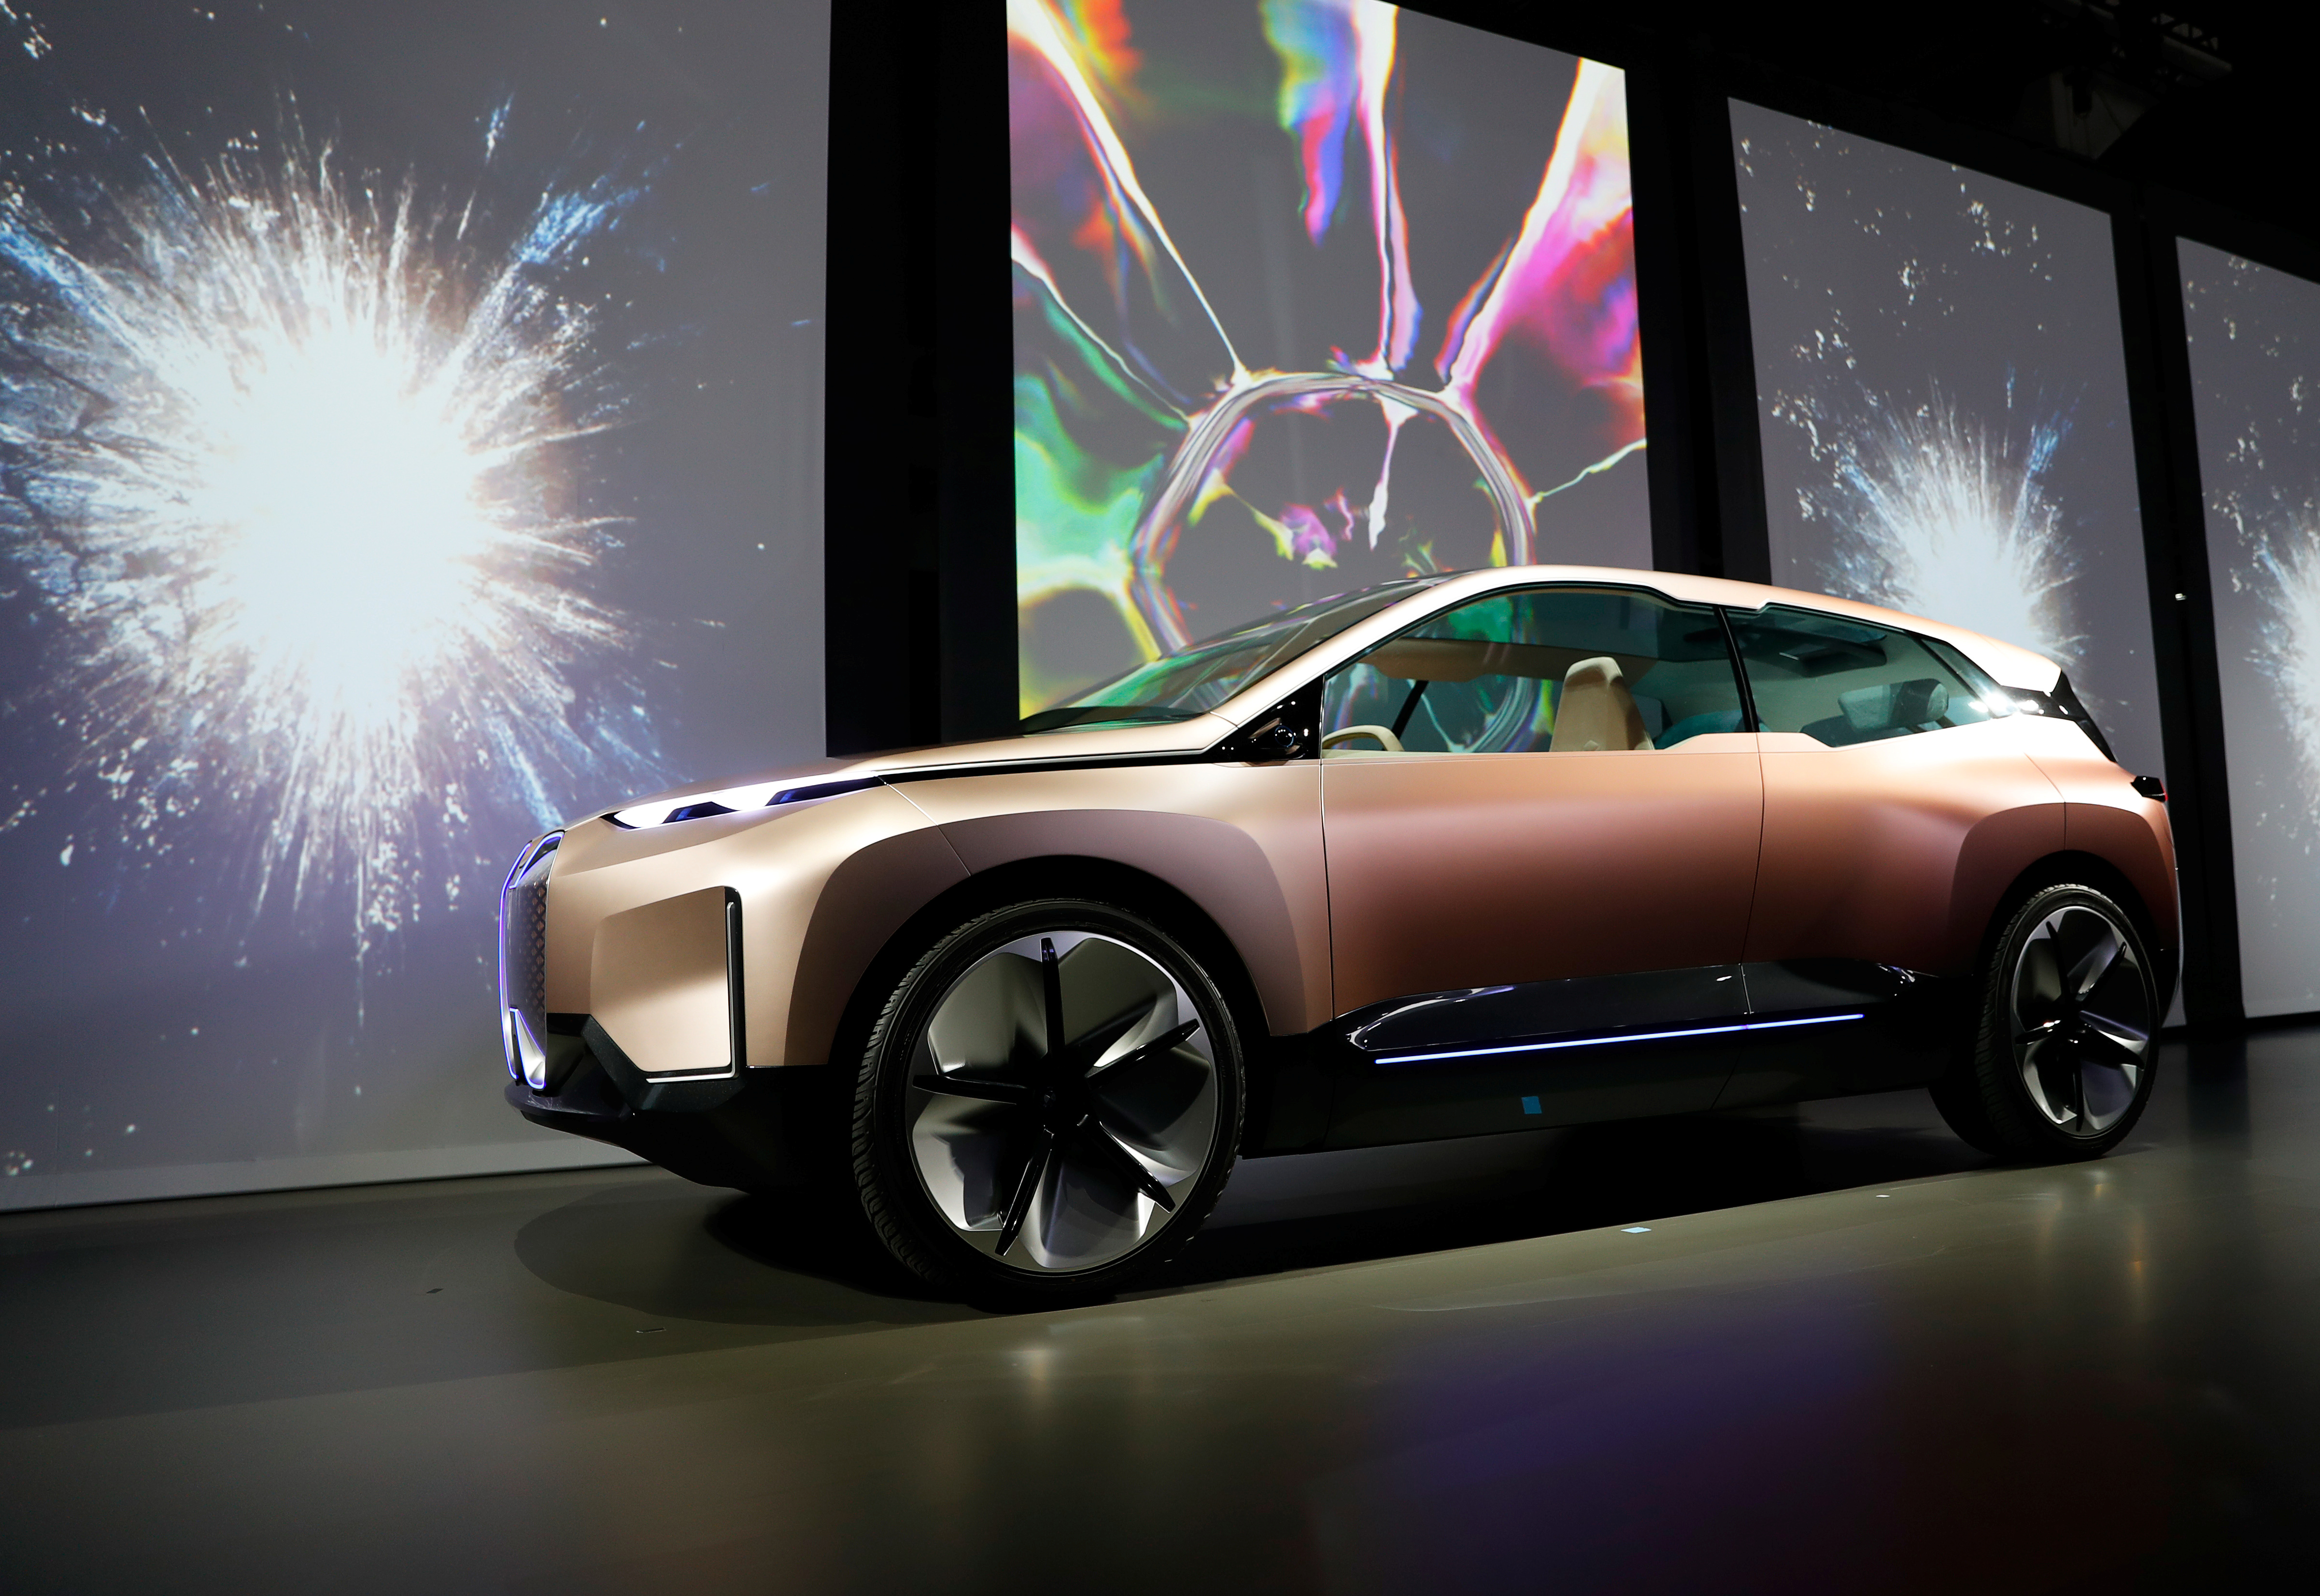 The BMW iNEXT electric autonomous concept car is introduced during a BMW press conference at the Los Angeles Auto Show in Los Angeles, California, U.S. November 28, 2018. REUTERS/Mike Blake/File Photo